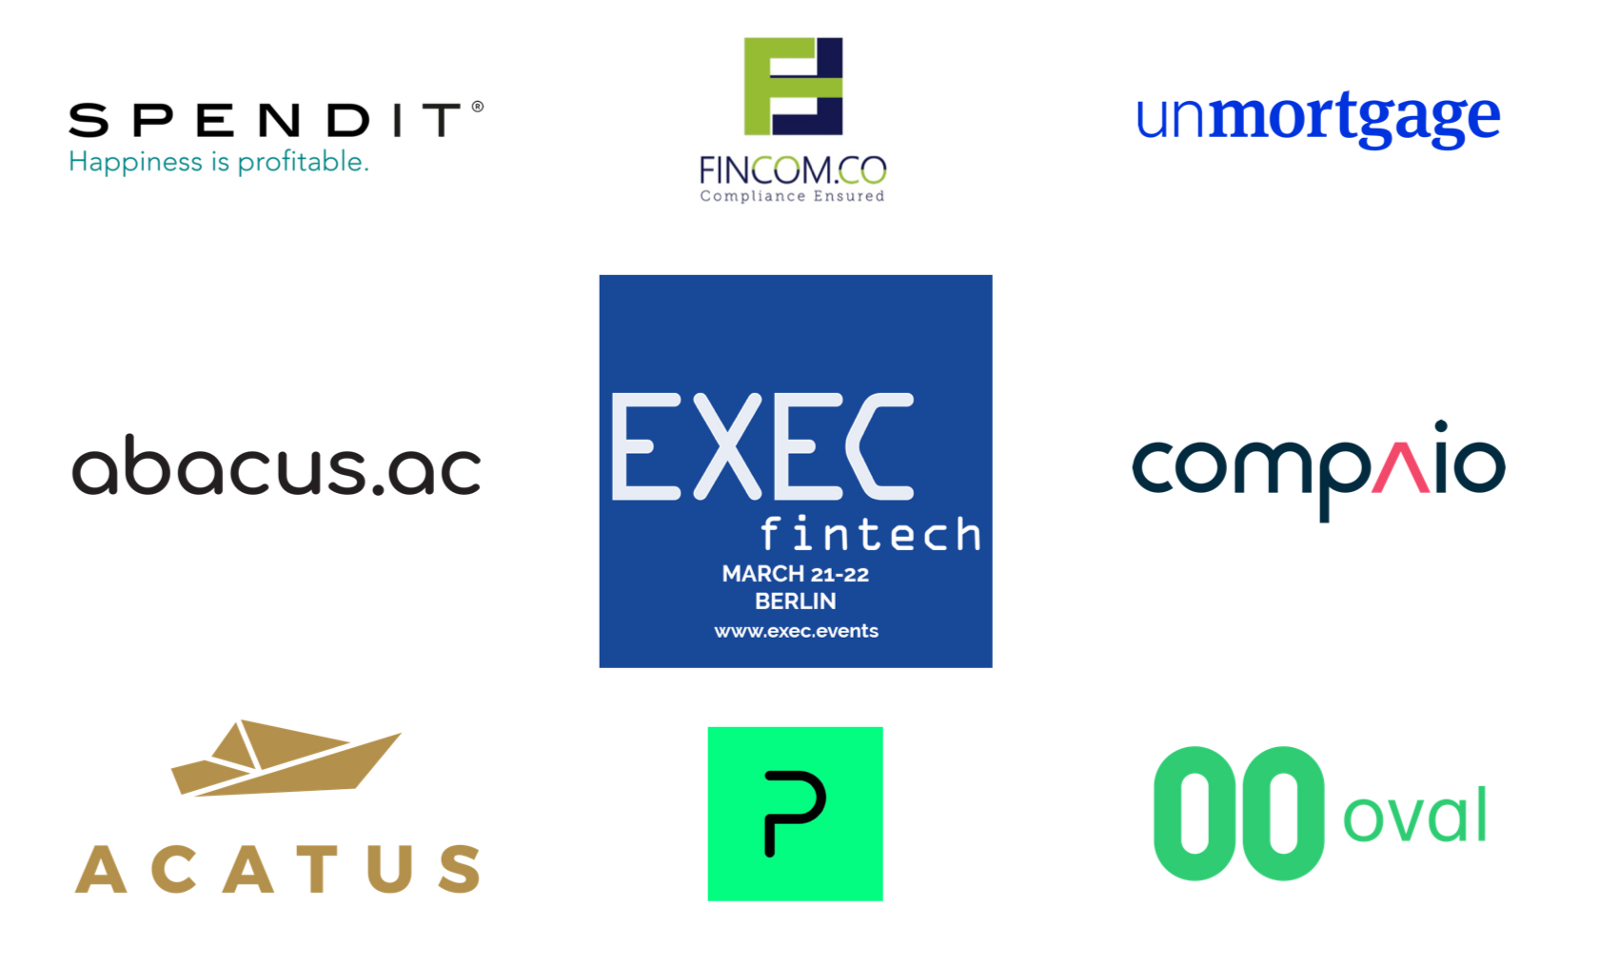 Meet the startups pitching on stage at EXECfintech Berlin 2018